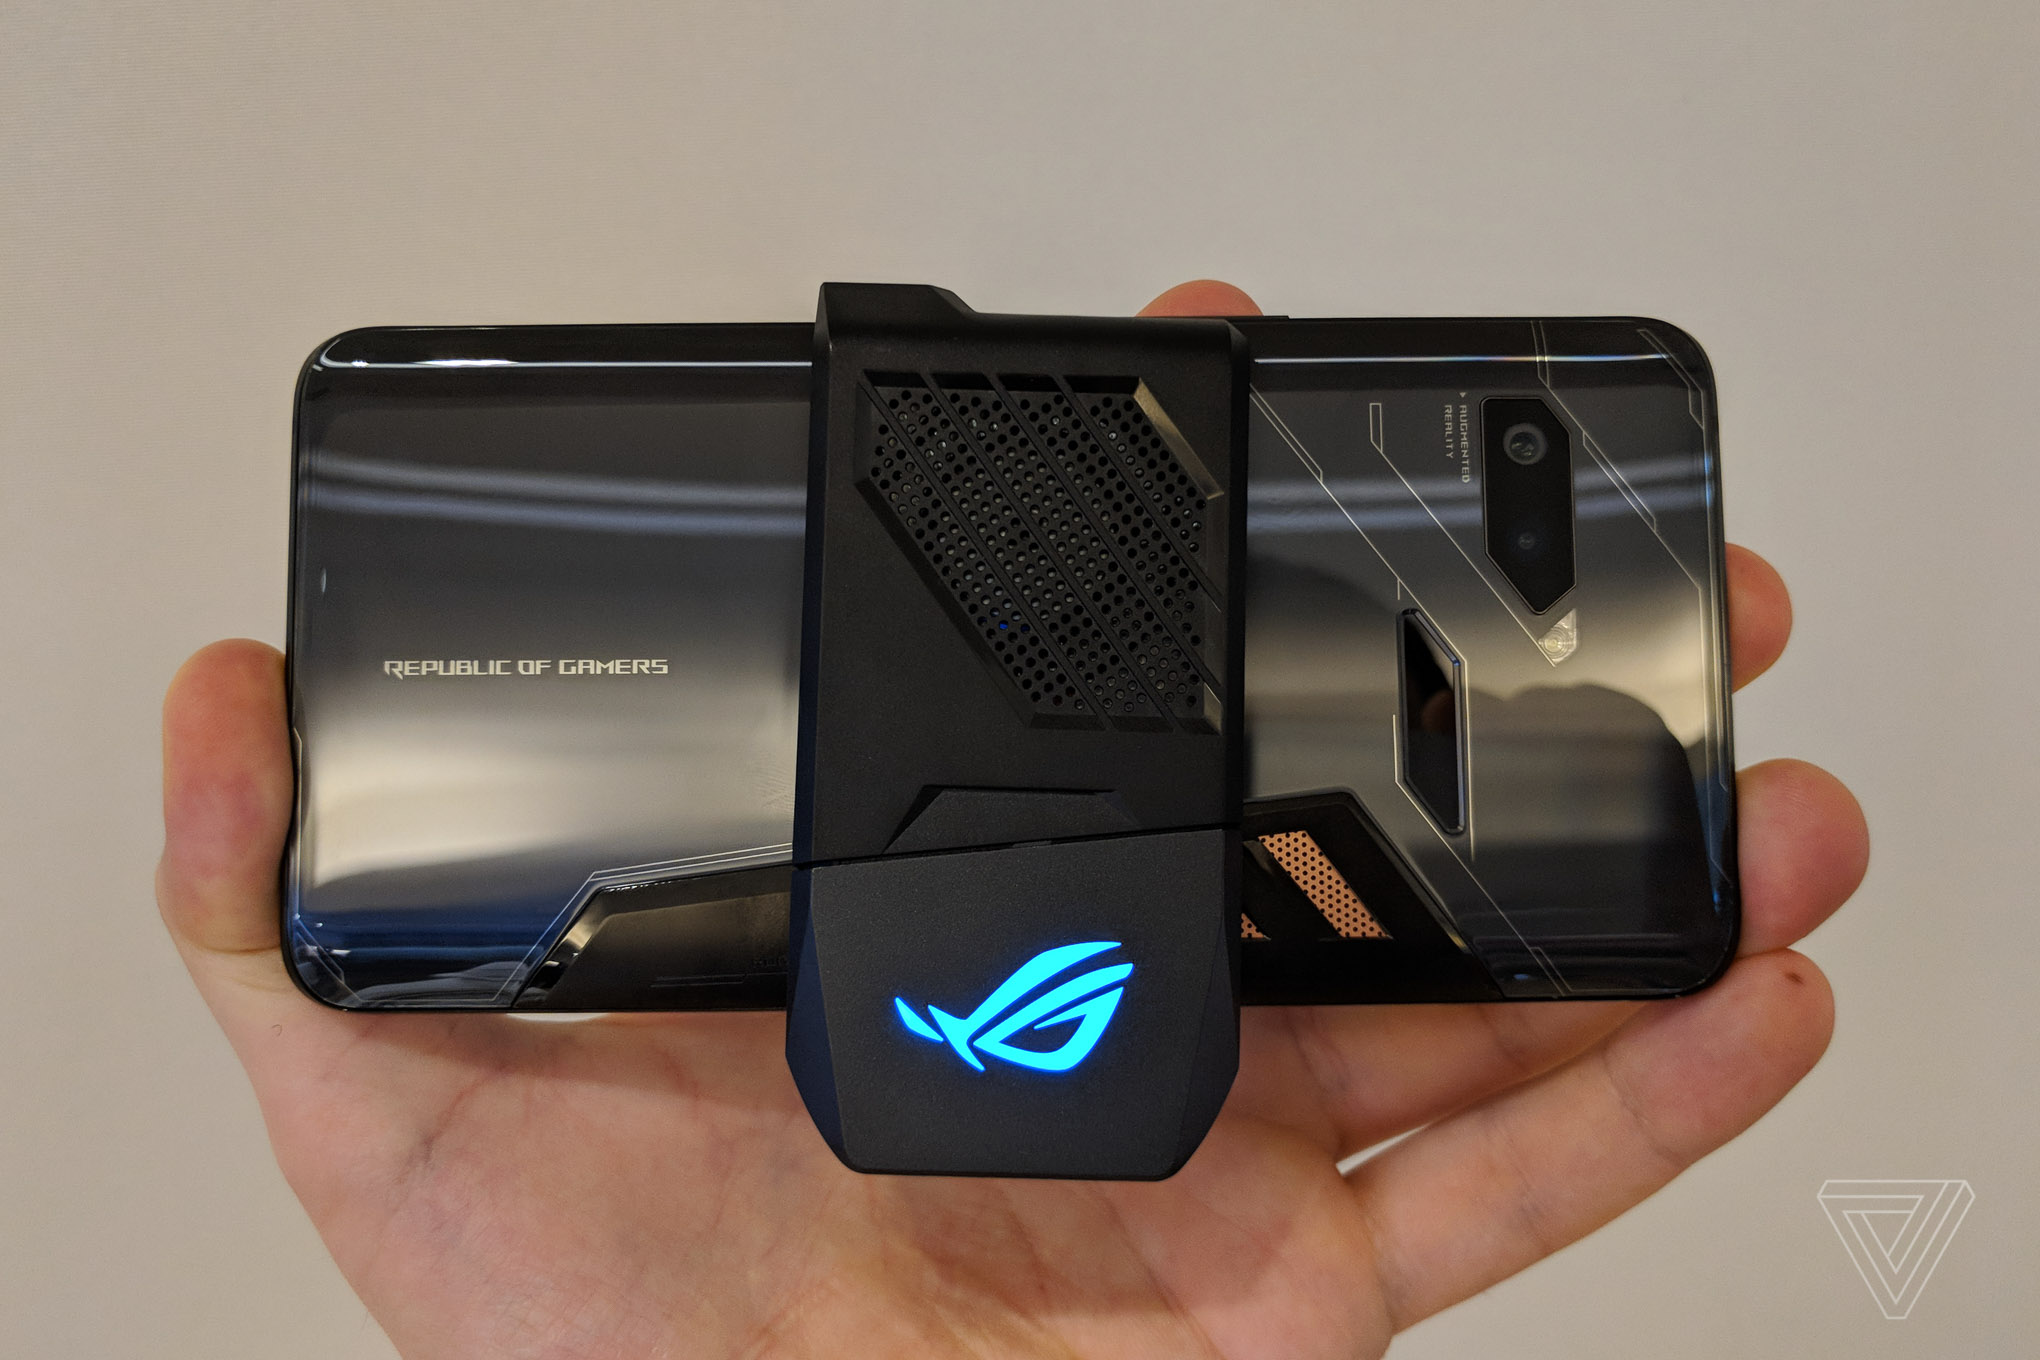 Asus Rog Phone Is The Latest Attempt To Make Gaming Phones Happen